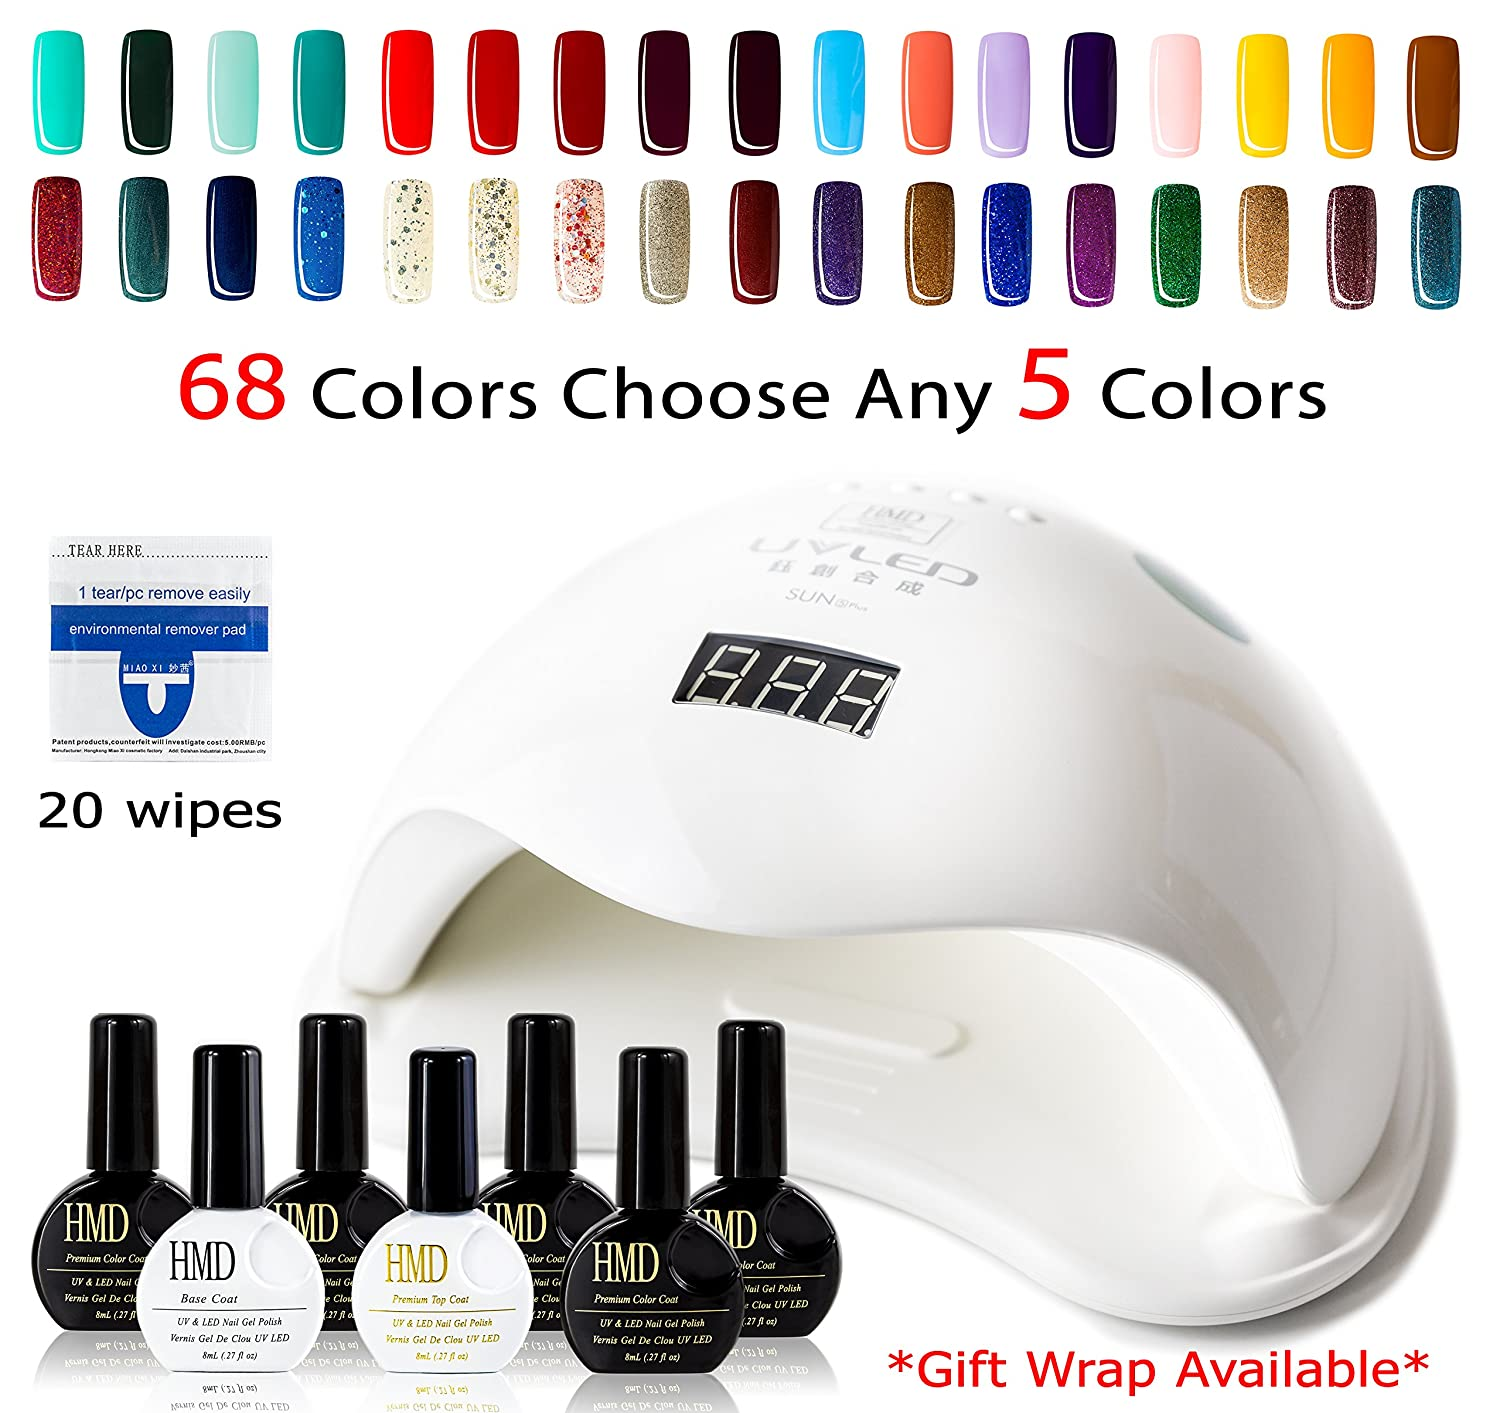 Canada HMD Soak Off UV LED Gel Nail Polish Kit with 48W SUN5 Plus Dryer Lamp, Super Fast Cured Color Gels (68 Colors Selections), Best Gift For Girls SUNUV